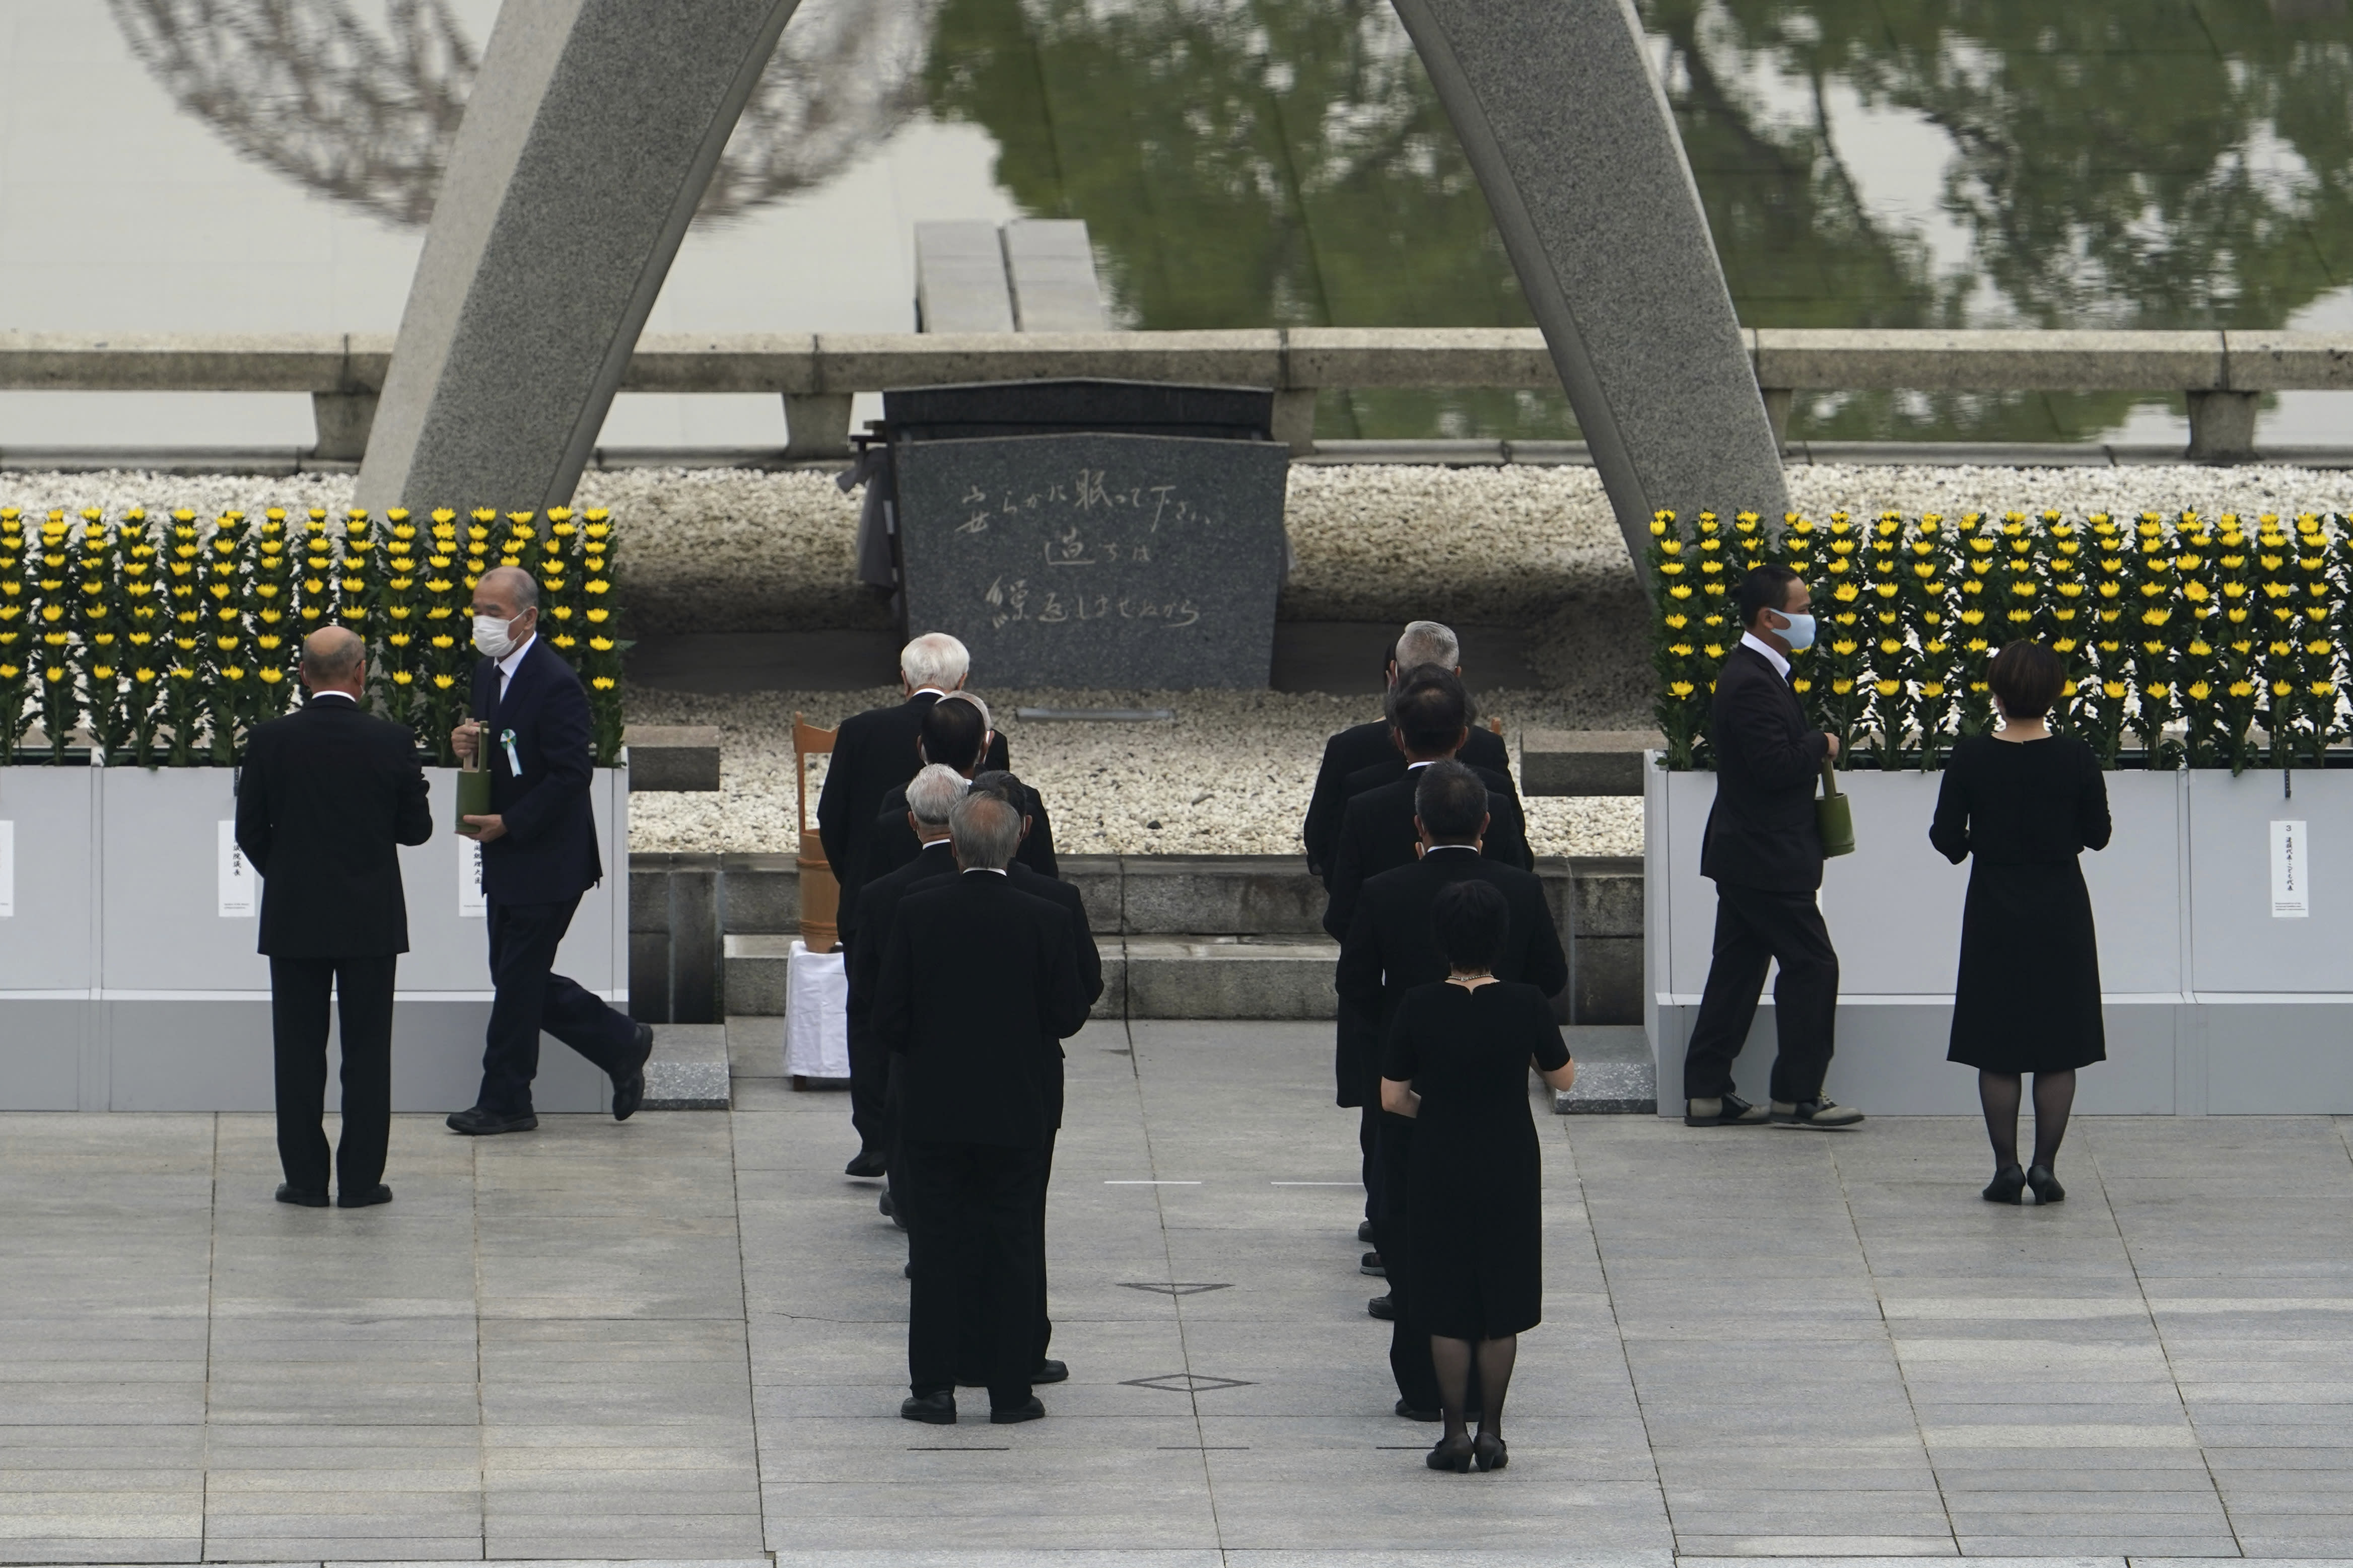 Participants gather at Hiroshima Memorial Cenotaph during the ceremony to mark the 75th anniversary of the bombing at the Hiroshima Peace Memorial Park in Hiroshima, western Japan Thursday, Aug. 6, 2020. (AP Photo/Eugene Hoshiko)